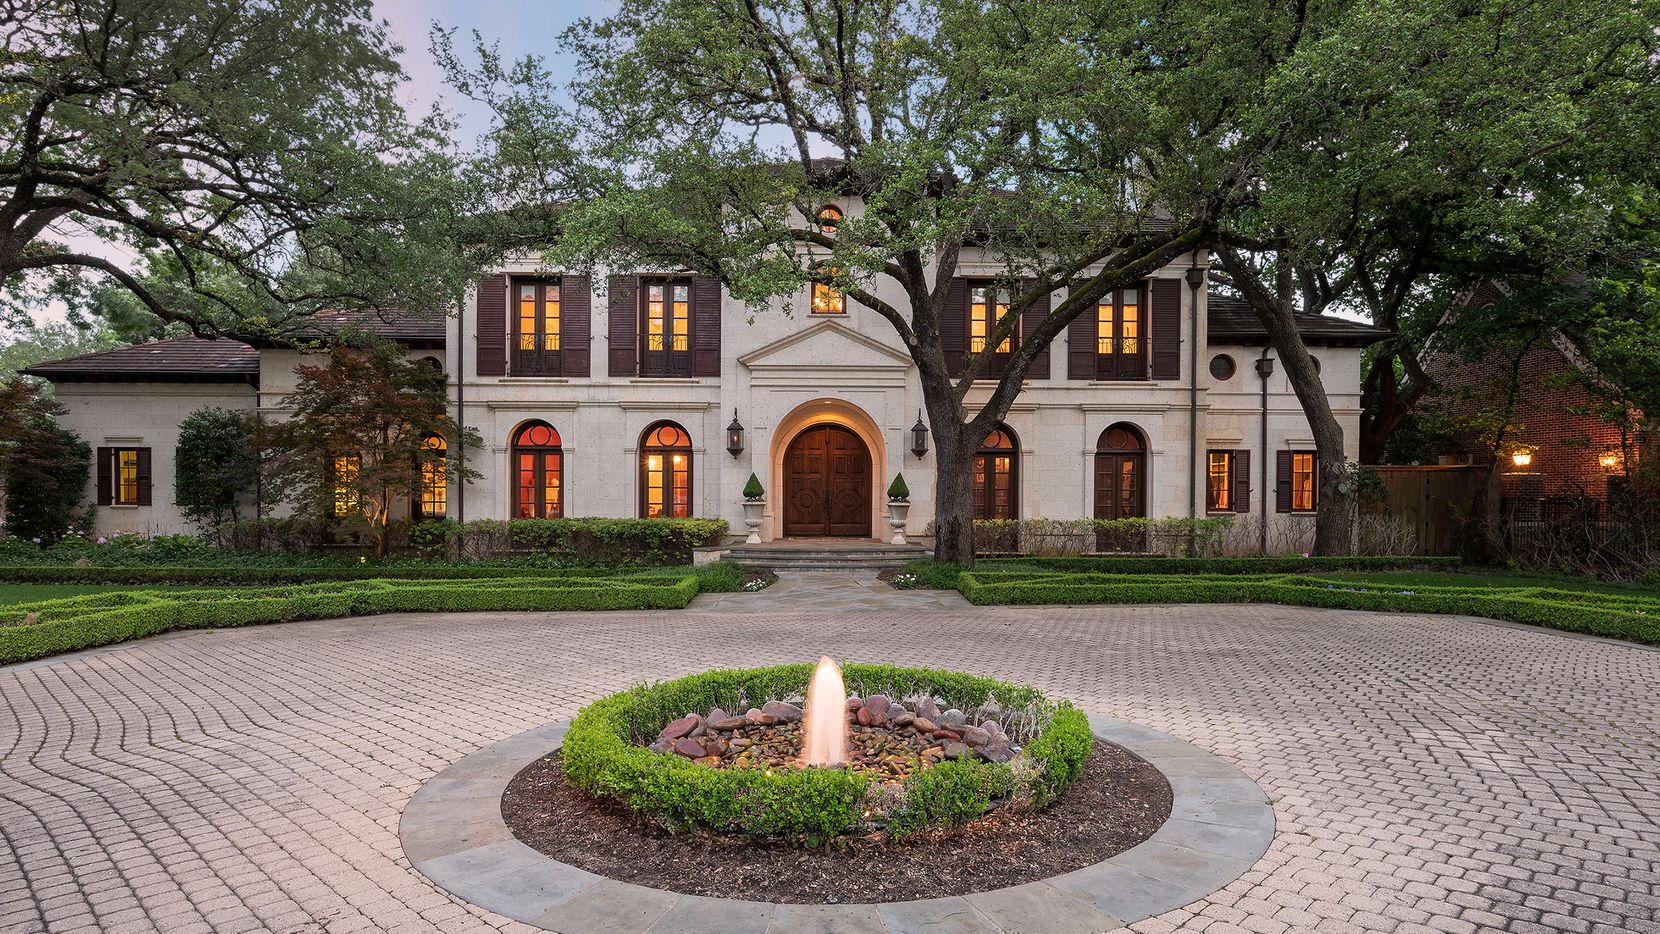 DFW is one of the most overheated residential property markets in the U.S., according to a recent report.